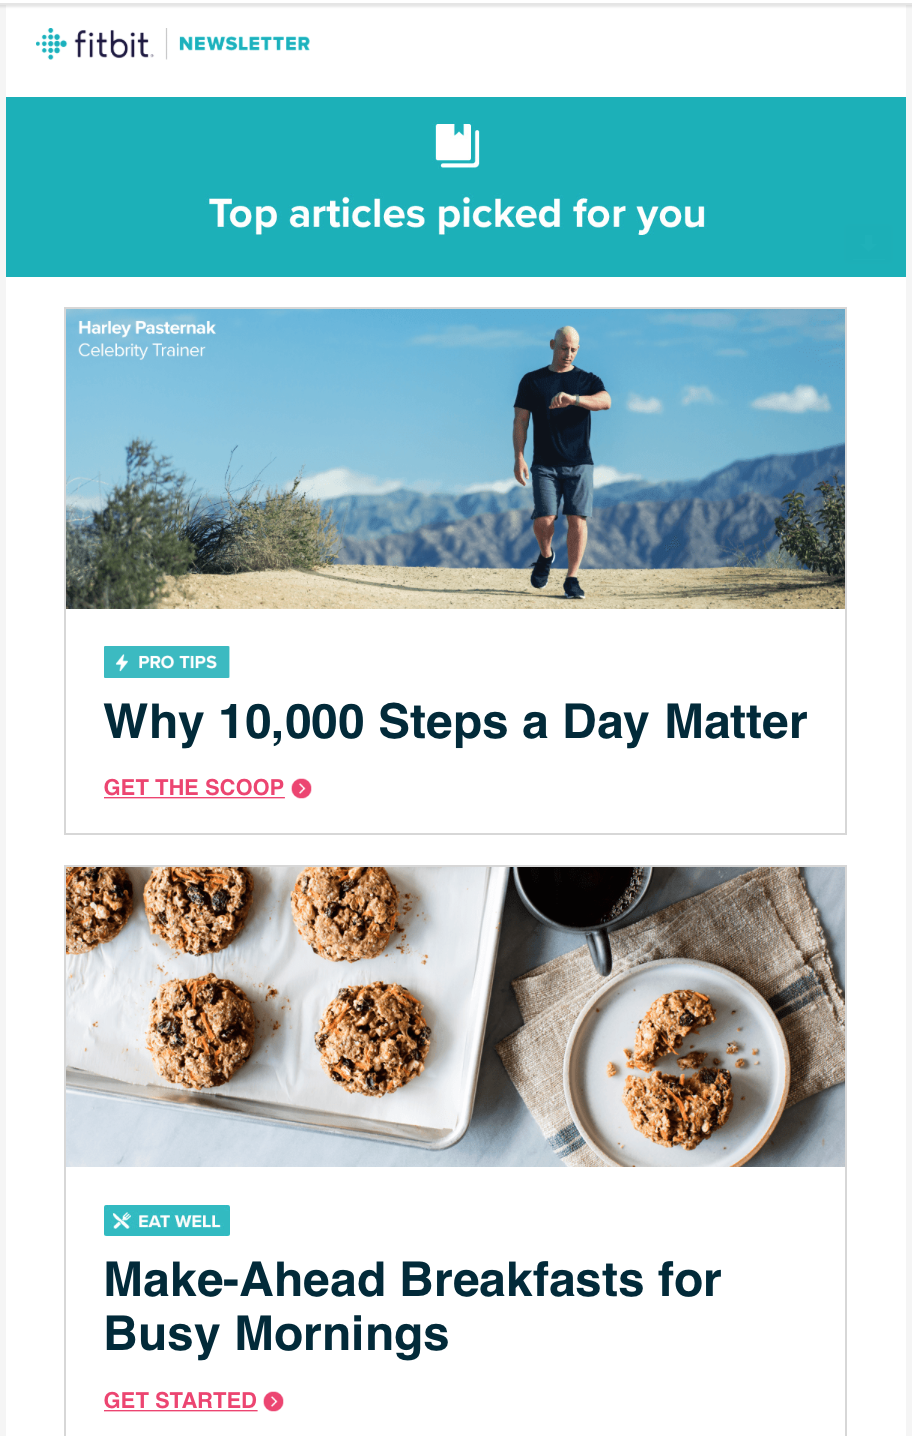 Fitbit April Newsletter:    Why 10K Steps A Day Matter     Celebrity trainer Harley Pasternak offers tips on how to sneak more steps into your day. To date, this popular article has gotten TK page views.